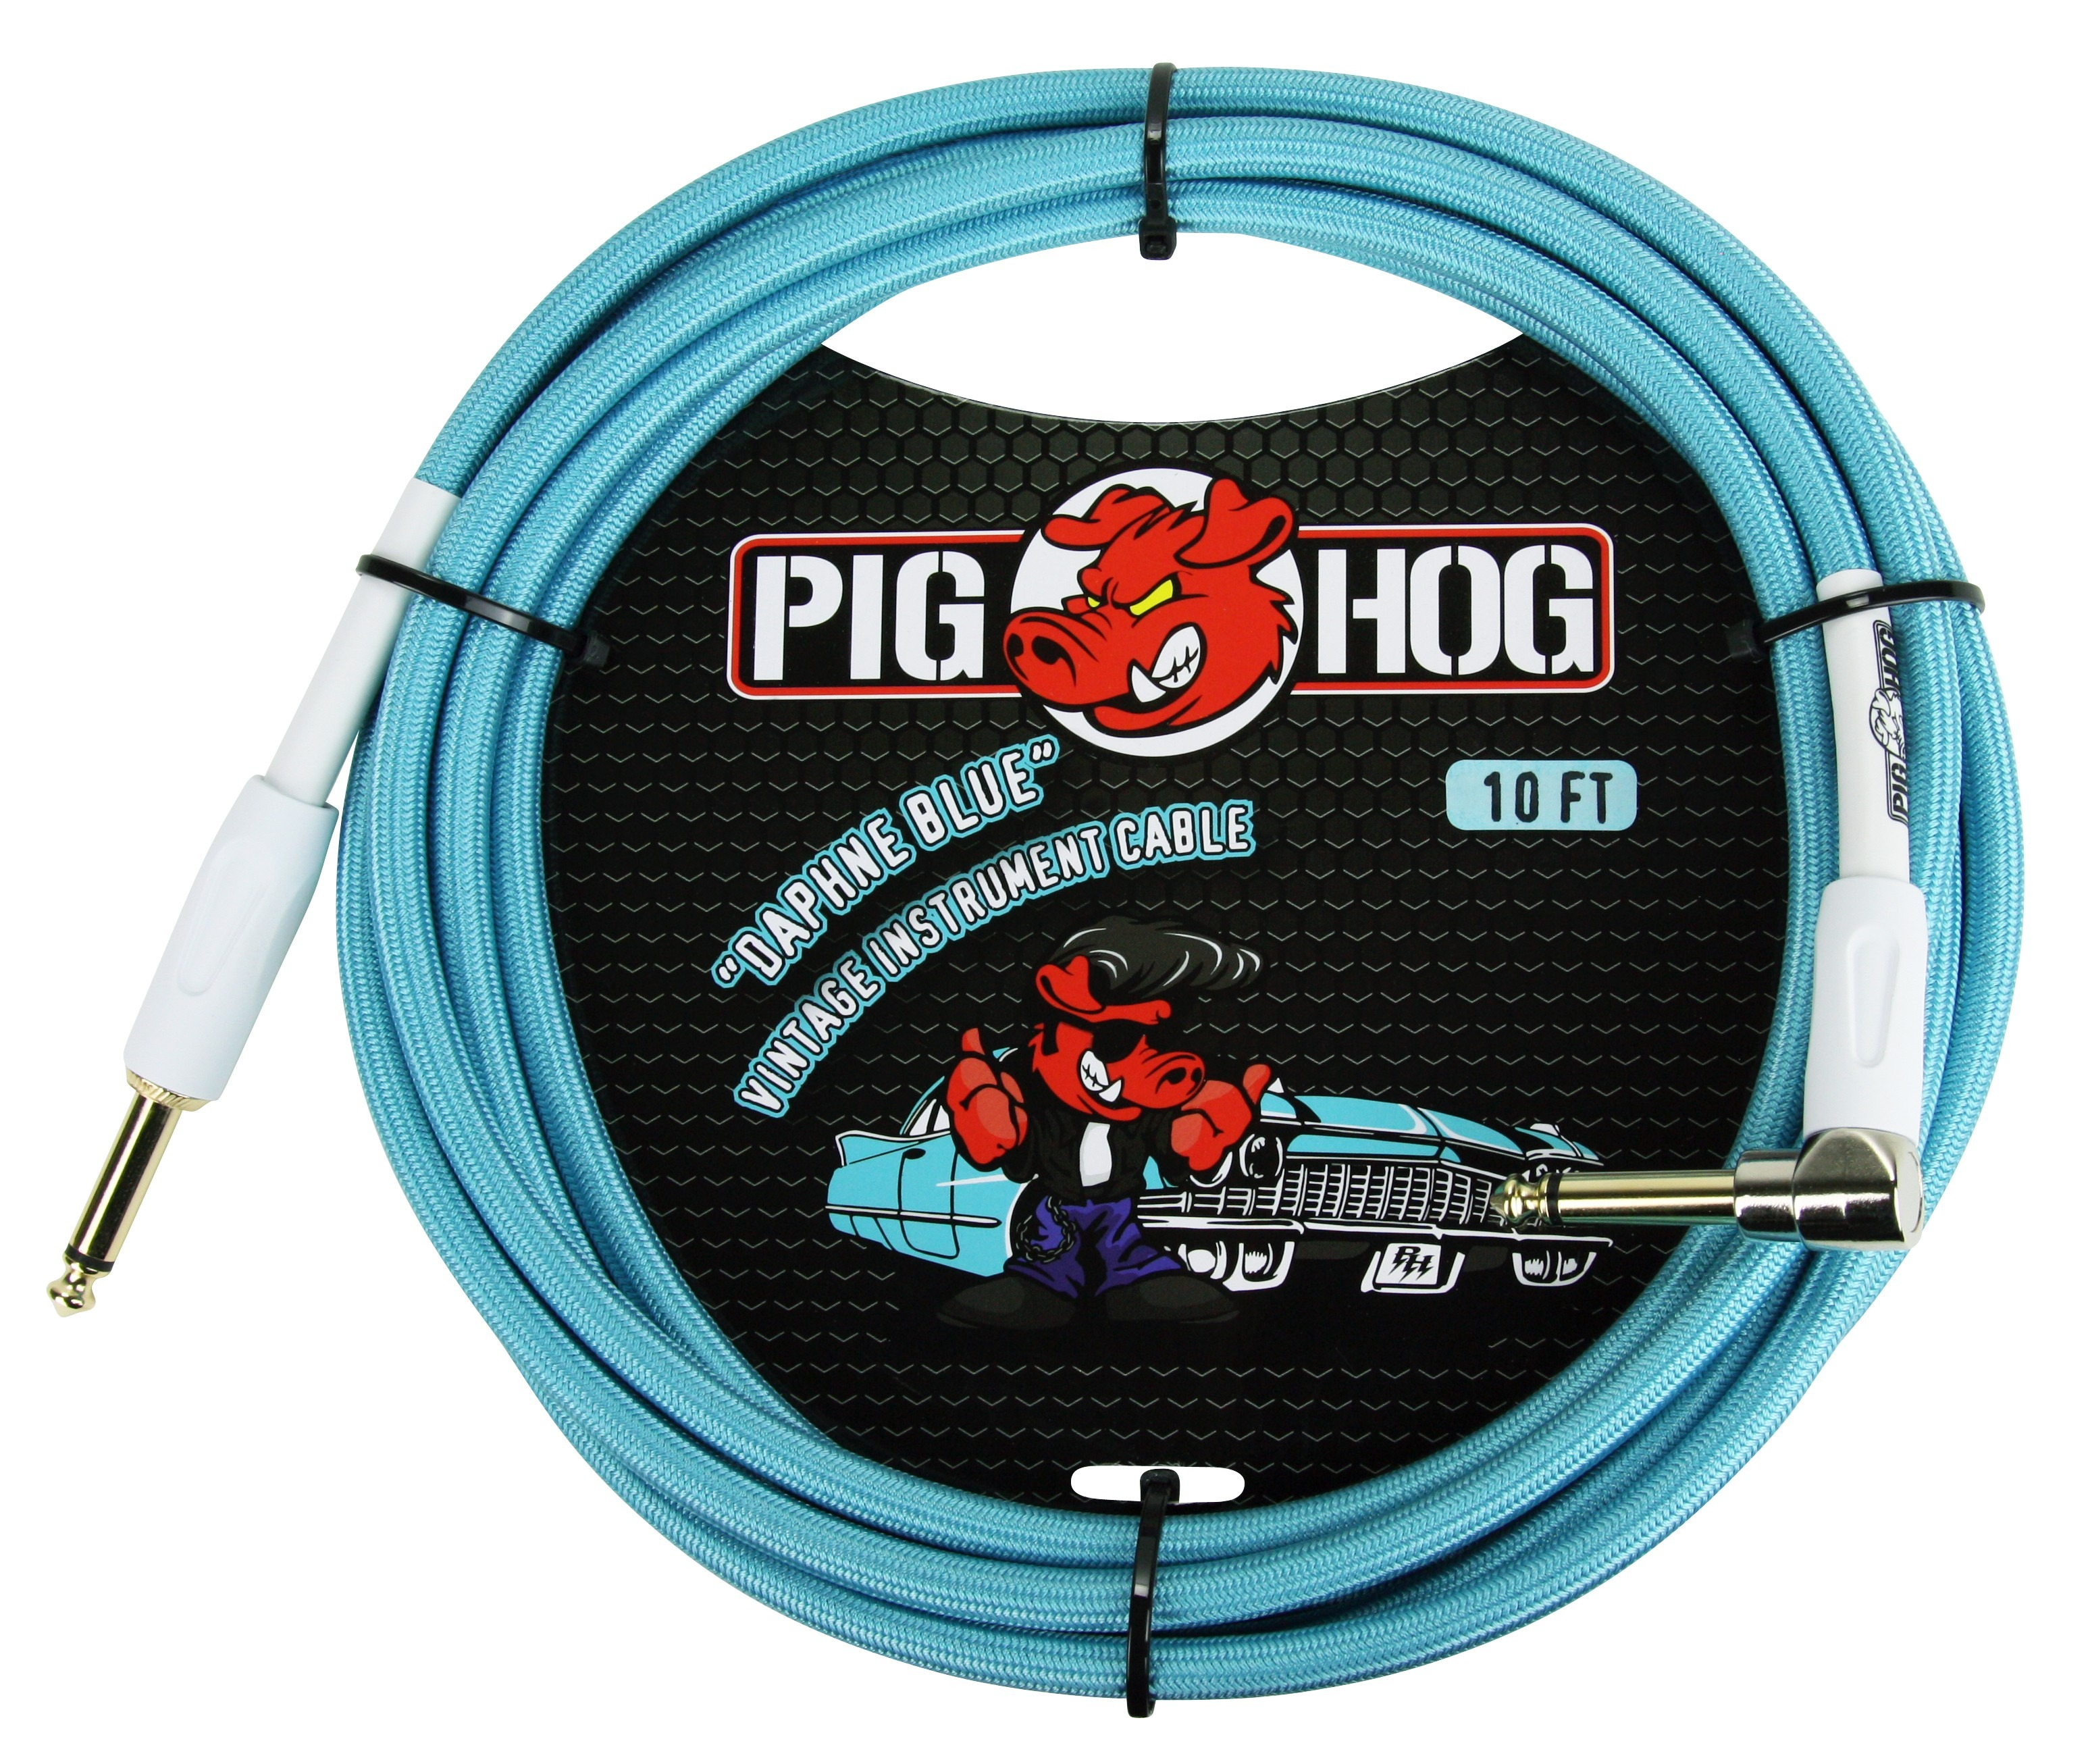 "Pig Hog 10ft x 8mm Vintage Series ""Daphne Blue"" Instrument Cable, 1/4"" Right Angle Connector"